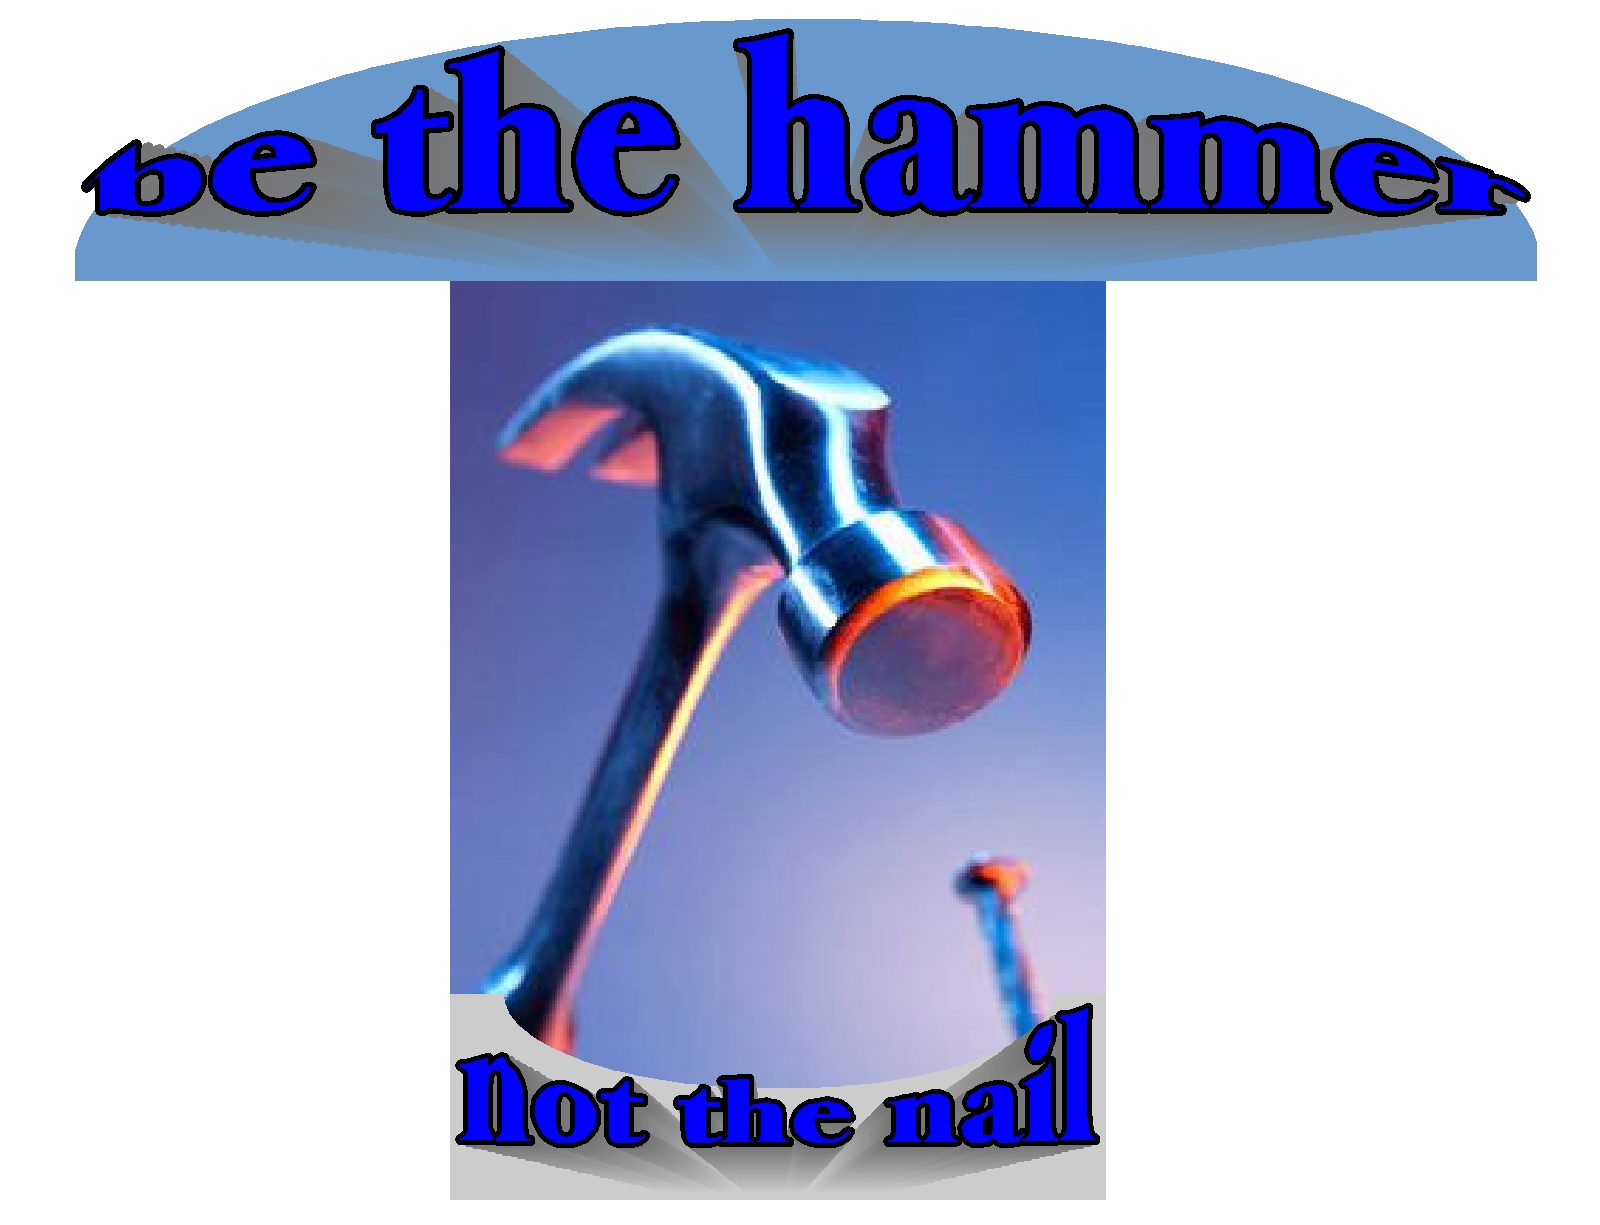 Perhaps….be the hammer, not the nail | Pocket Perspectives